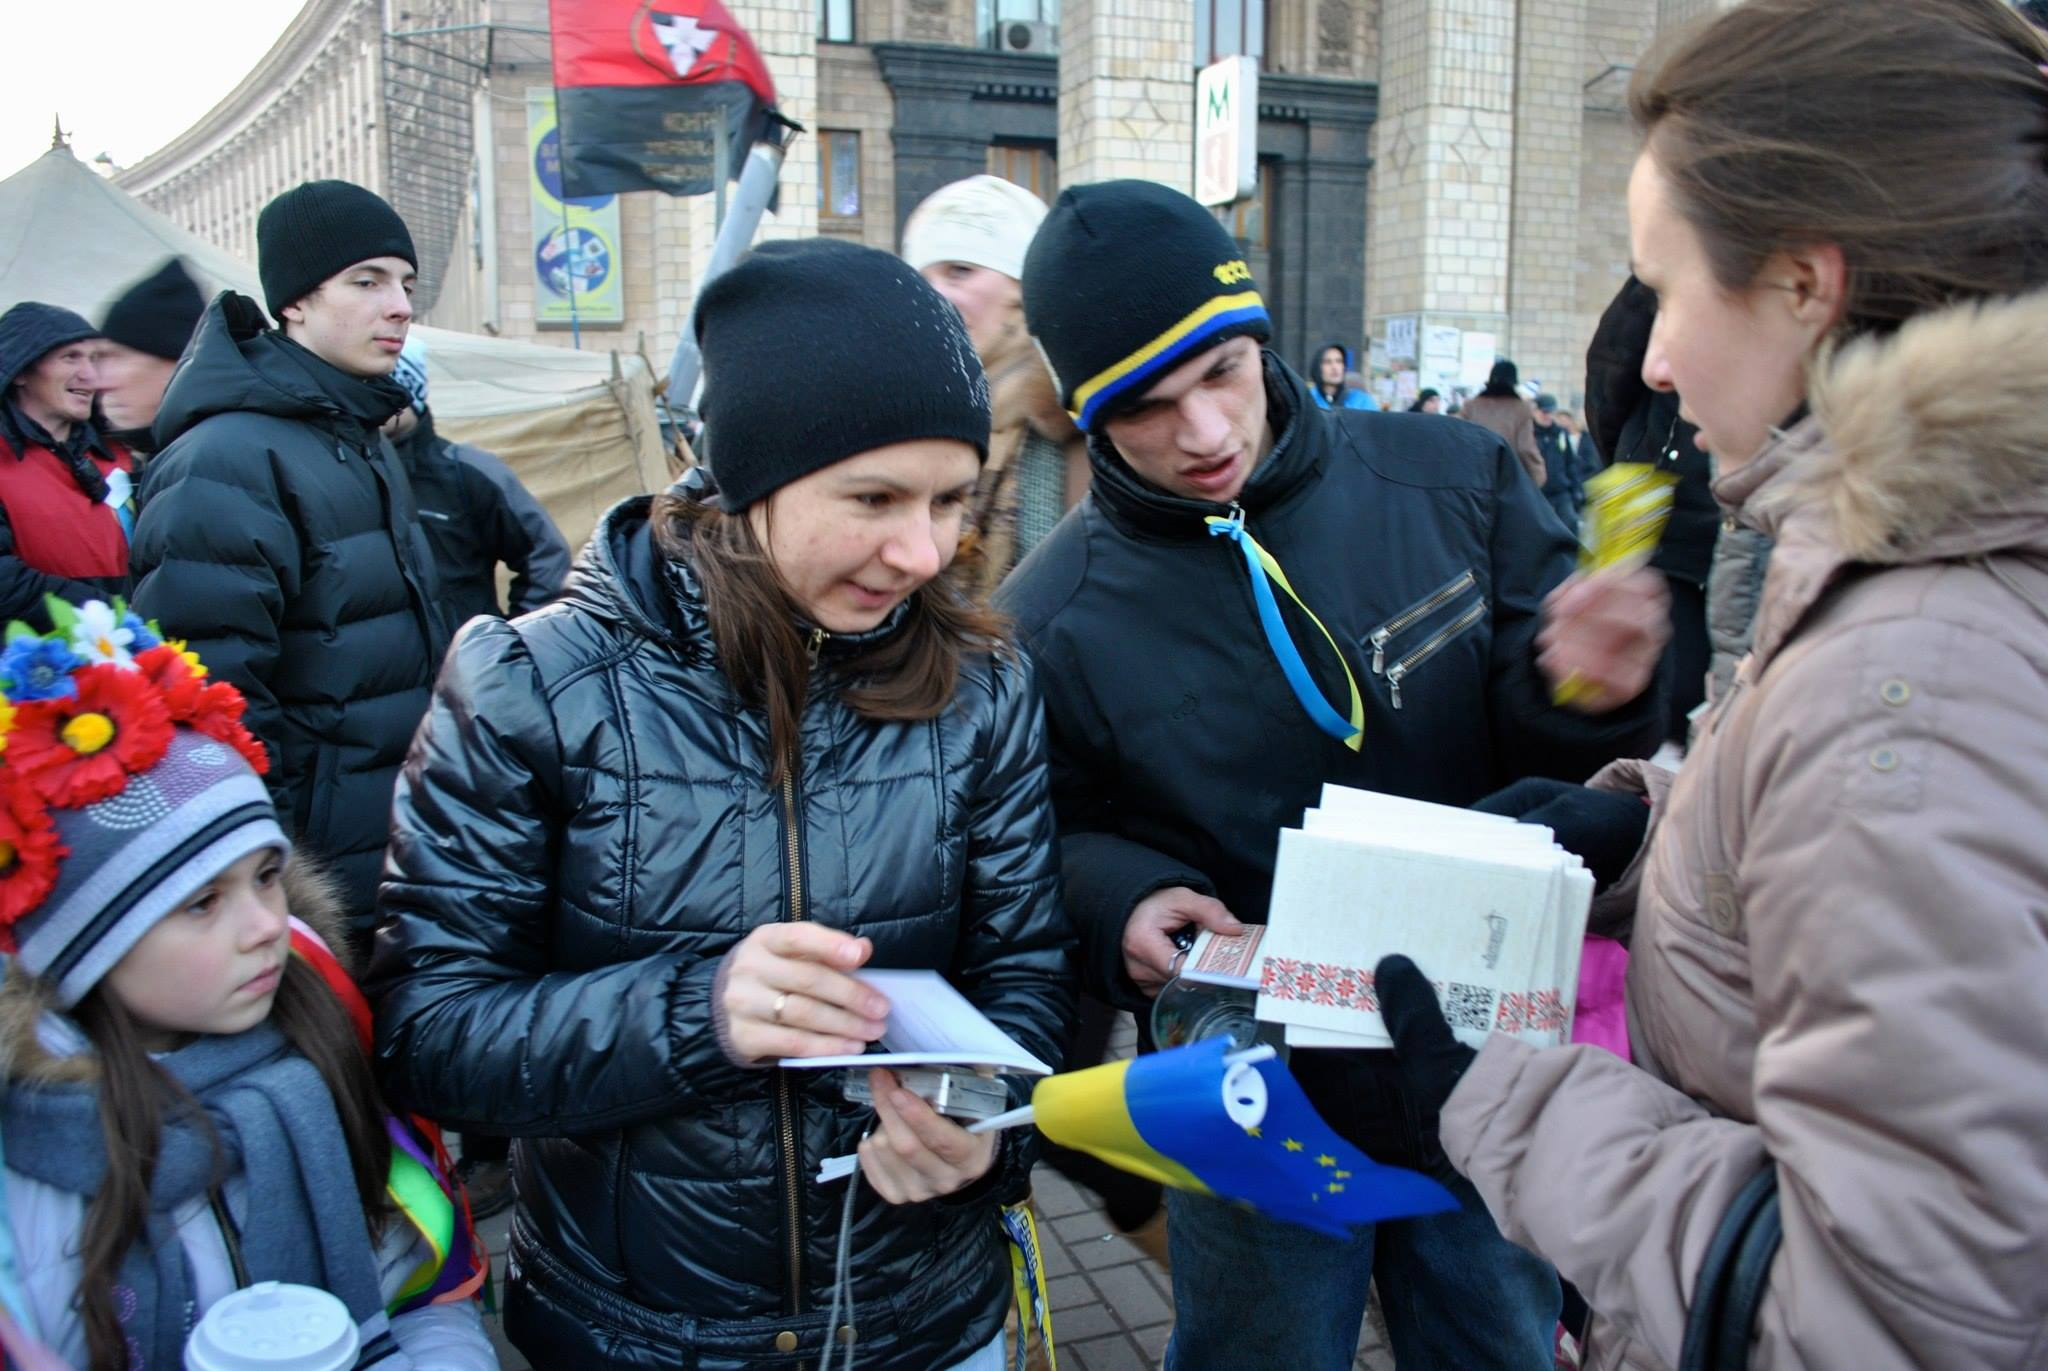 Gospels of John shared with Ukrainian protestors